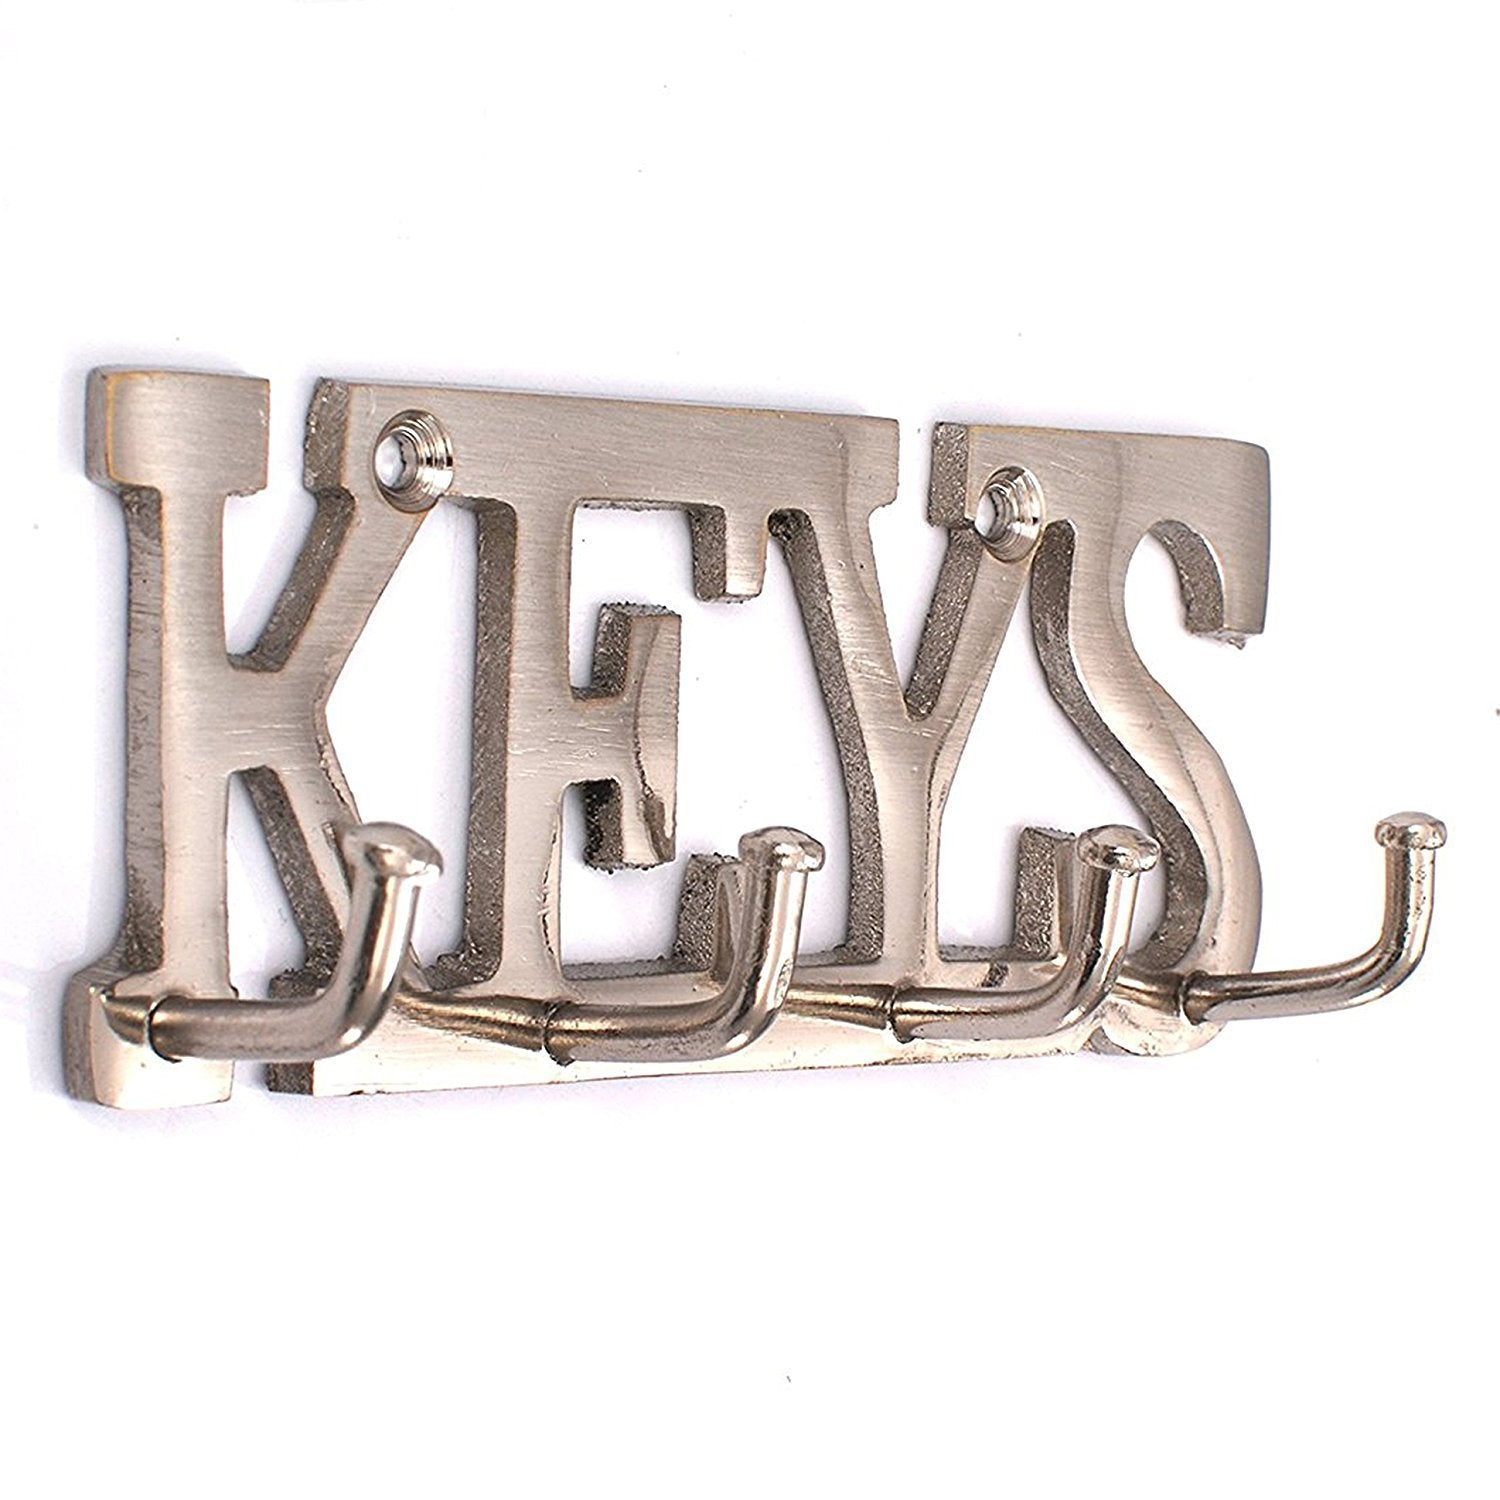 SAHAYA Keys Key Holder Stainless Steel Finish 11 Cms X 4 Cms (Silver) with for Home, Office, Decor, Gift 2 Free Key Chains